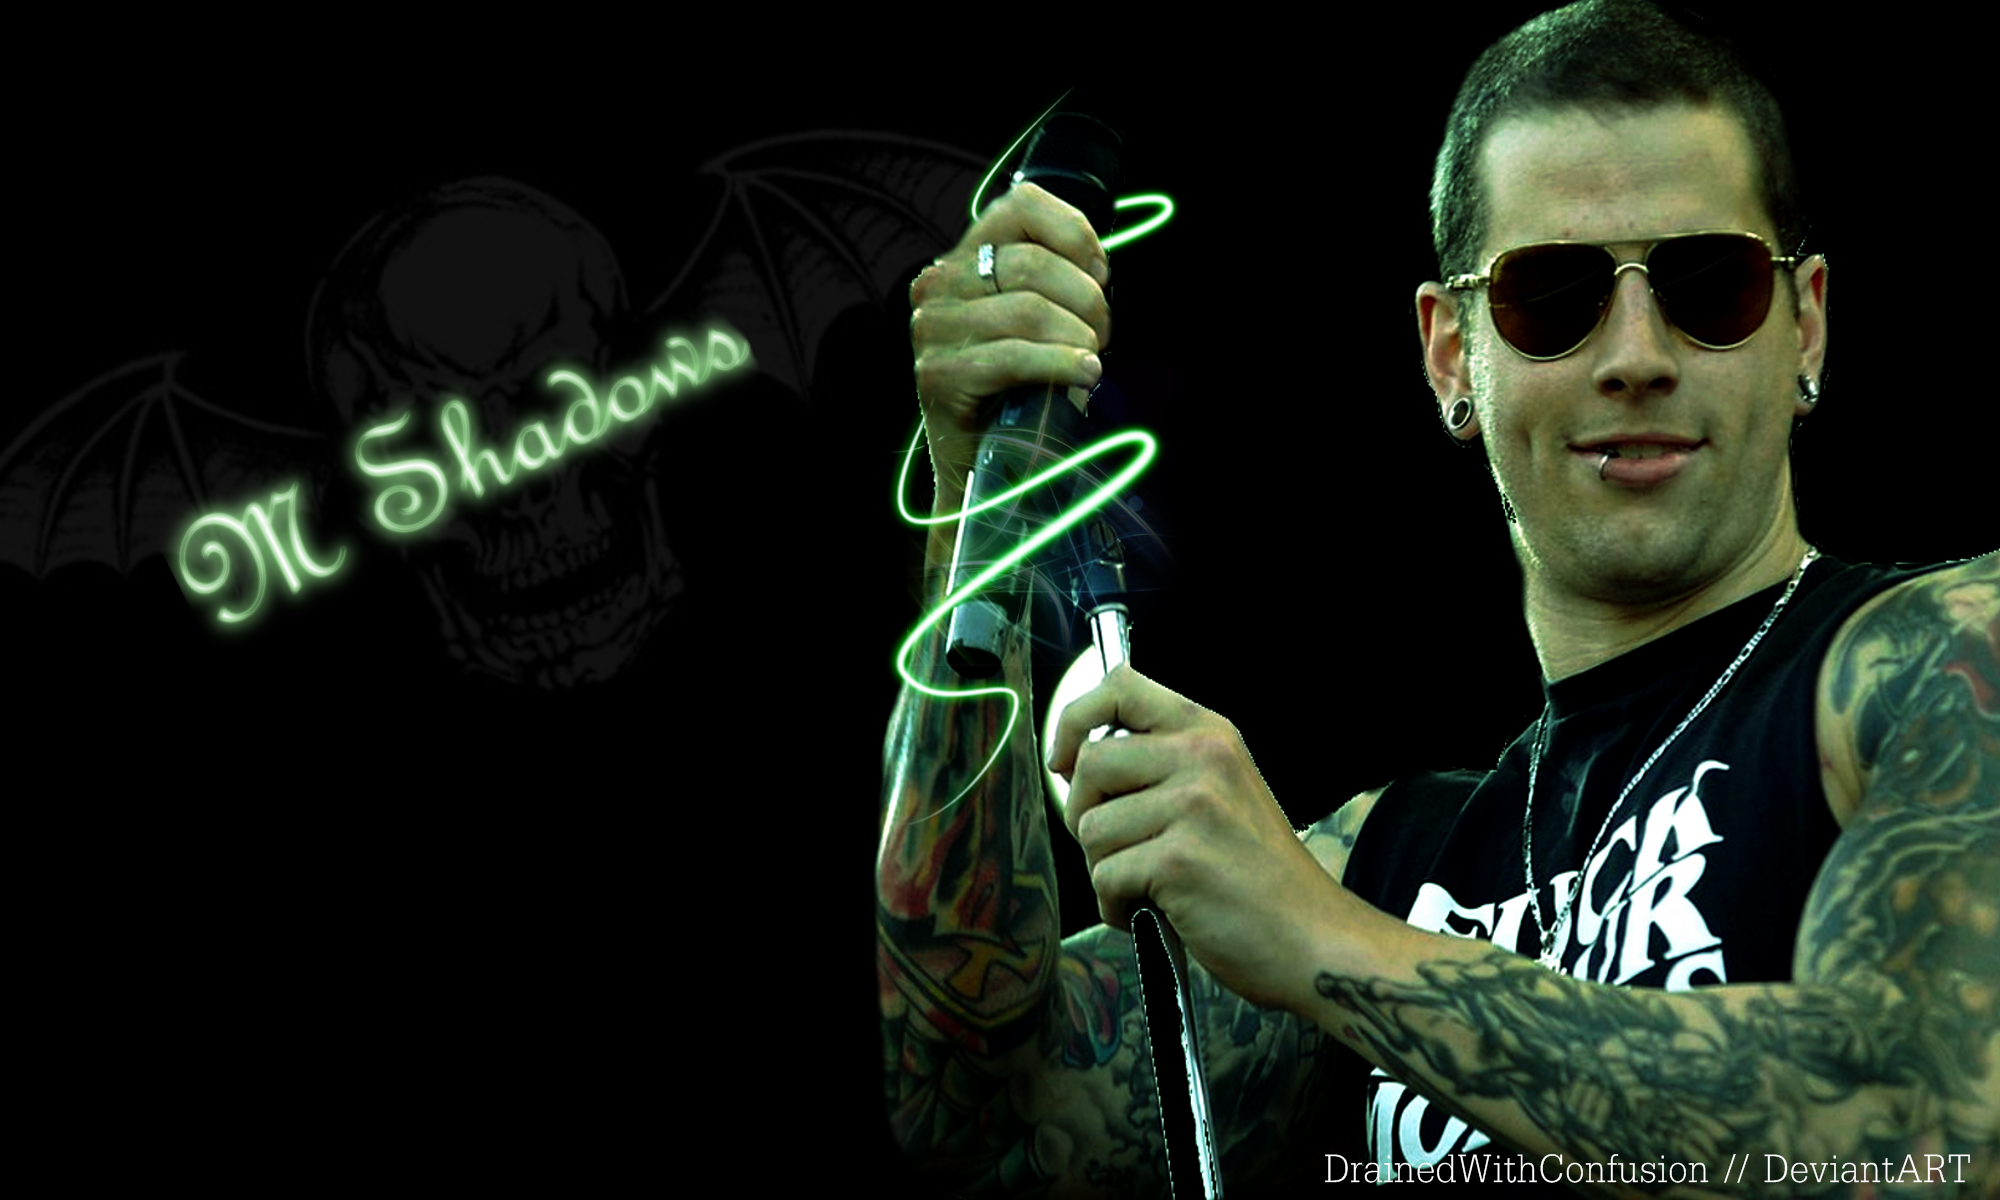 shadows wallpaper 1 by drainedwithconfusion customization wallpaper 2000x1200